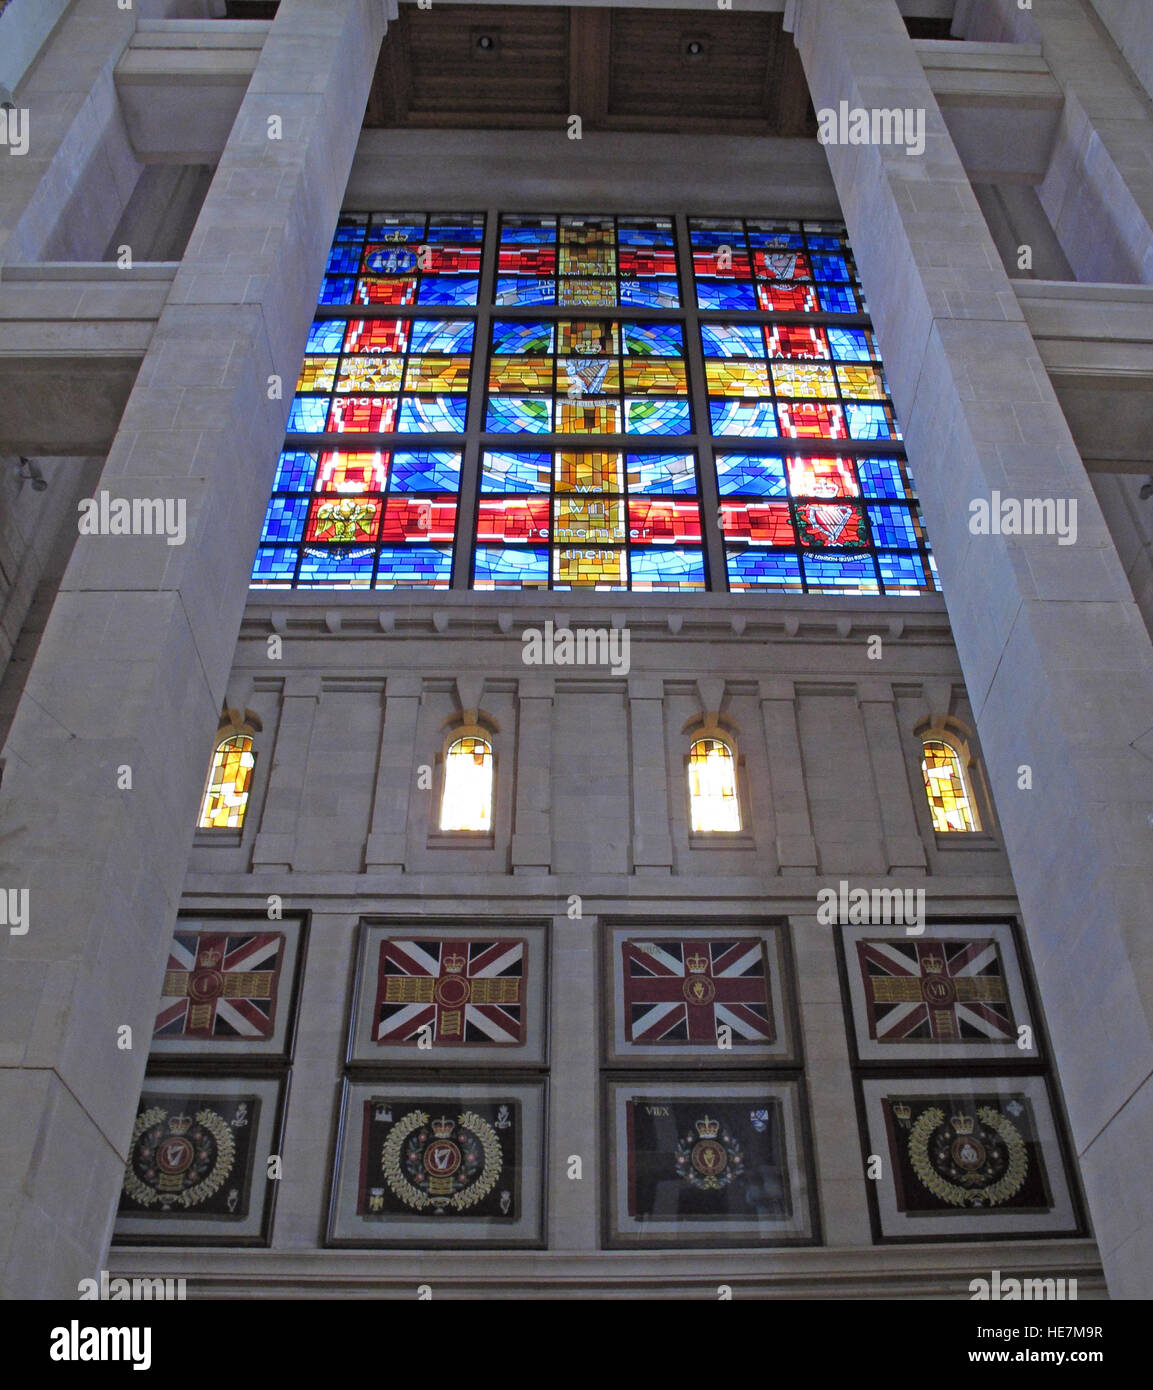 Inside,architecture,building,stone,arch,holy,St Annes,Belfast Cathedral,saint,Annes,Royal Irish Rangers Window,Rangers,Stained,Glass,Window,We will remember them,with,British Flag,union flag,union jack,GoTonySmith,@HotpixUK,Tony,Smith,UK,GB,Great,Britain,United,Kingdom,Irish,British,Ireland,problem,with,problem with,issue with,NI,Northern,Northern Ireland,Belfast,City,Centre,Art,Artists,the,troubles,The Troubles,Good Friday Agreement,Peace,honour,painting,wall,walls,tribute,republicanism,Fight,Justice,West,Beal,feirste,martyrs,social,tour,tourism,tourists,urban,six,counties,6,backdrop,county,Antrim,Quarter,Buy Pictures of,Buy Images Of,Images of,Stock Images,Tony Smith,United Kingdom,Great Britain,British Isles